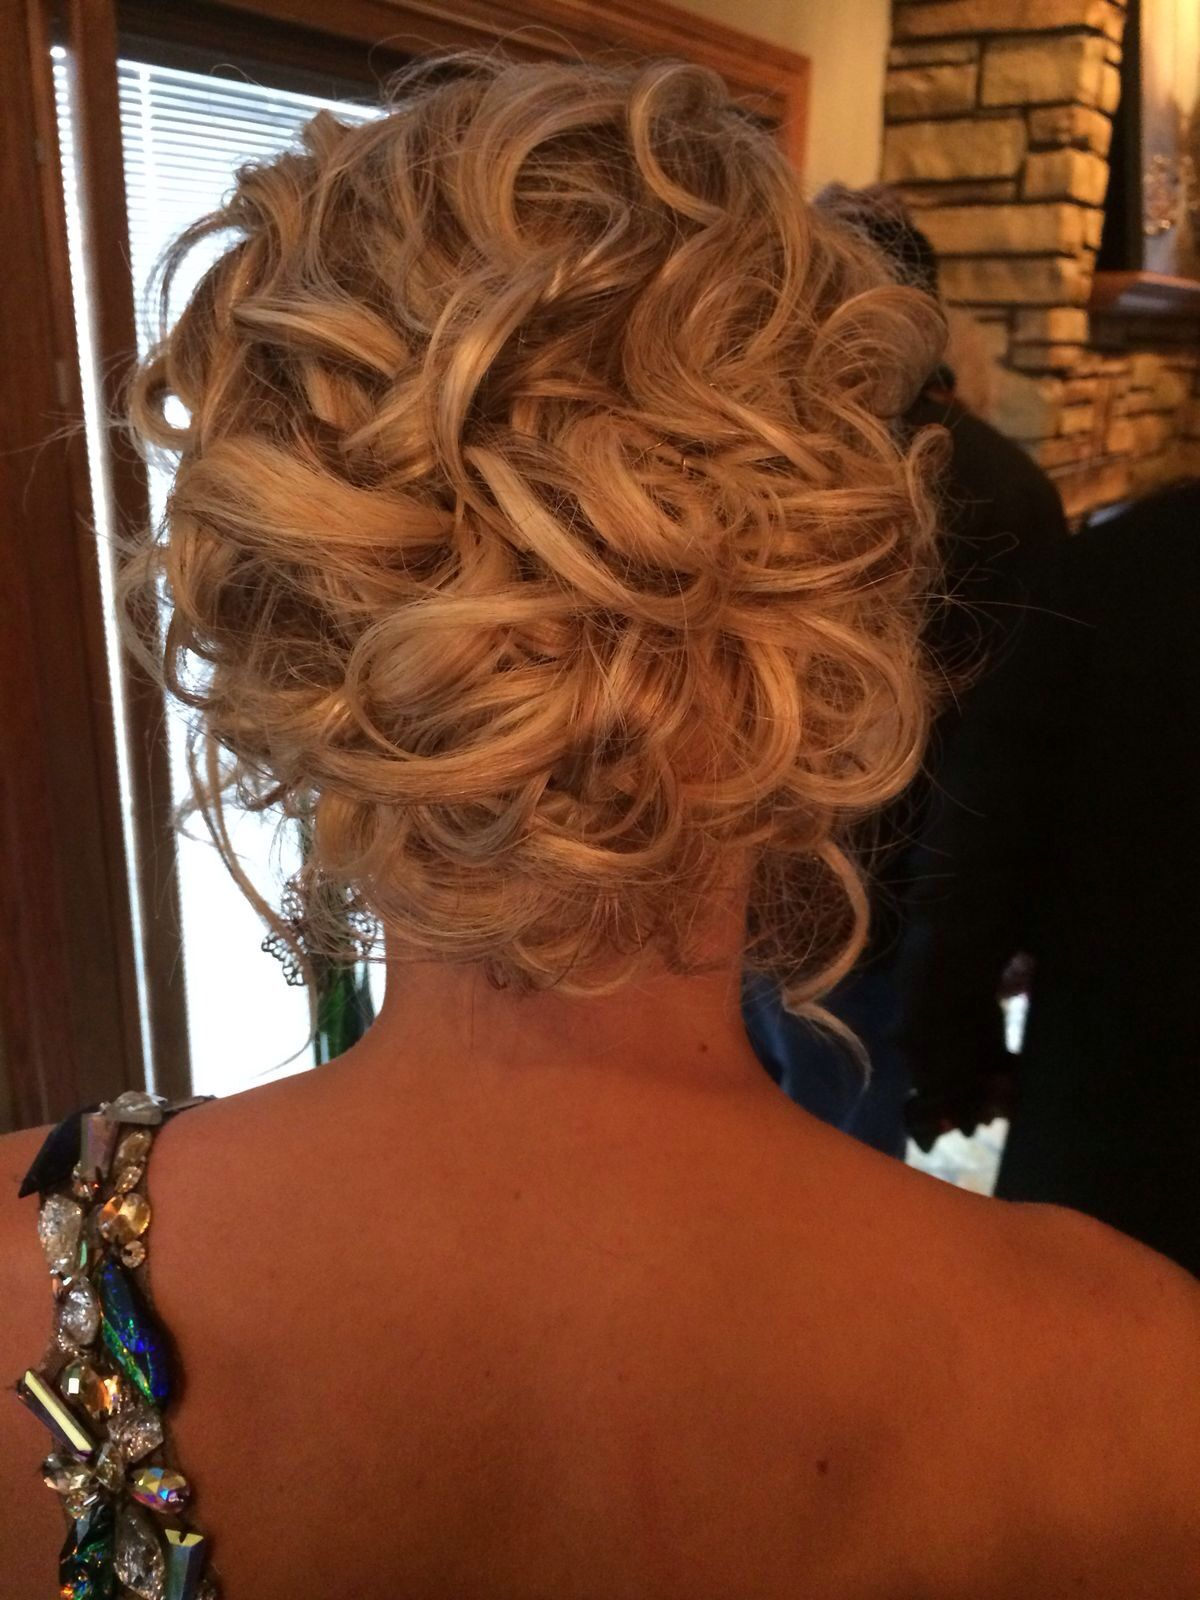 Prom hair updo hairstyles pinterest prom hair updo hair updo